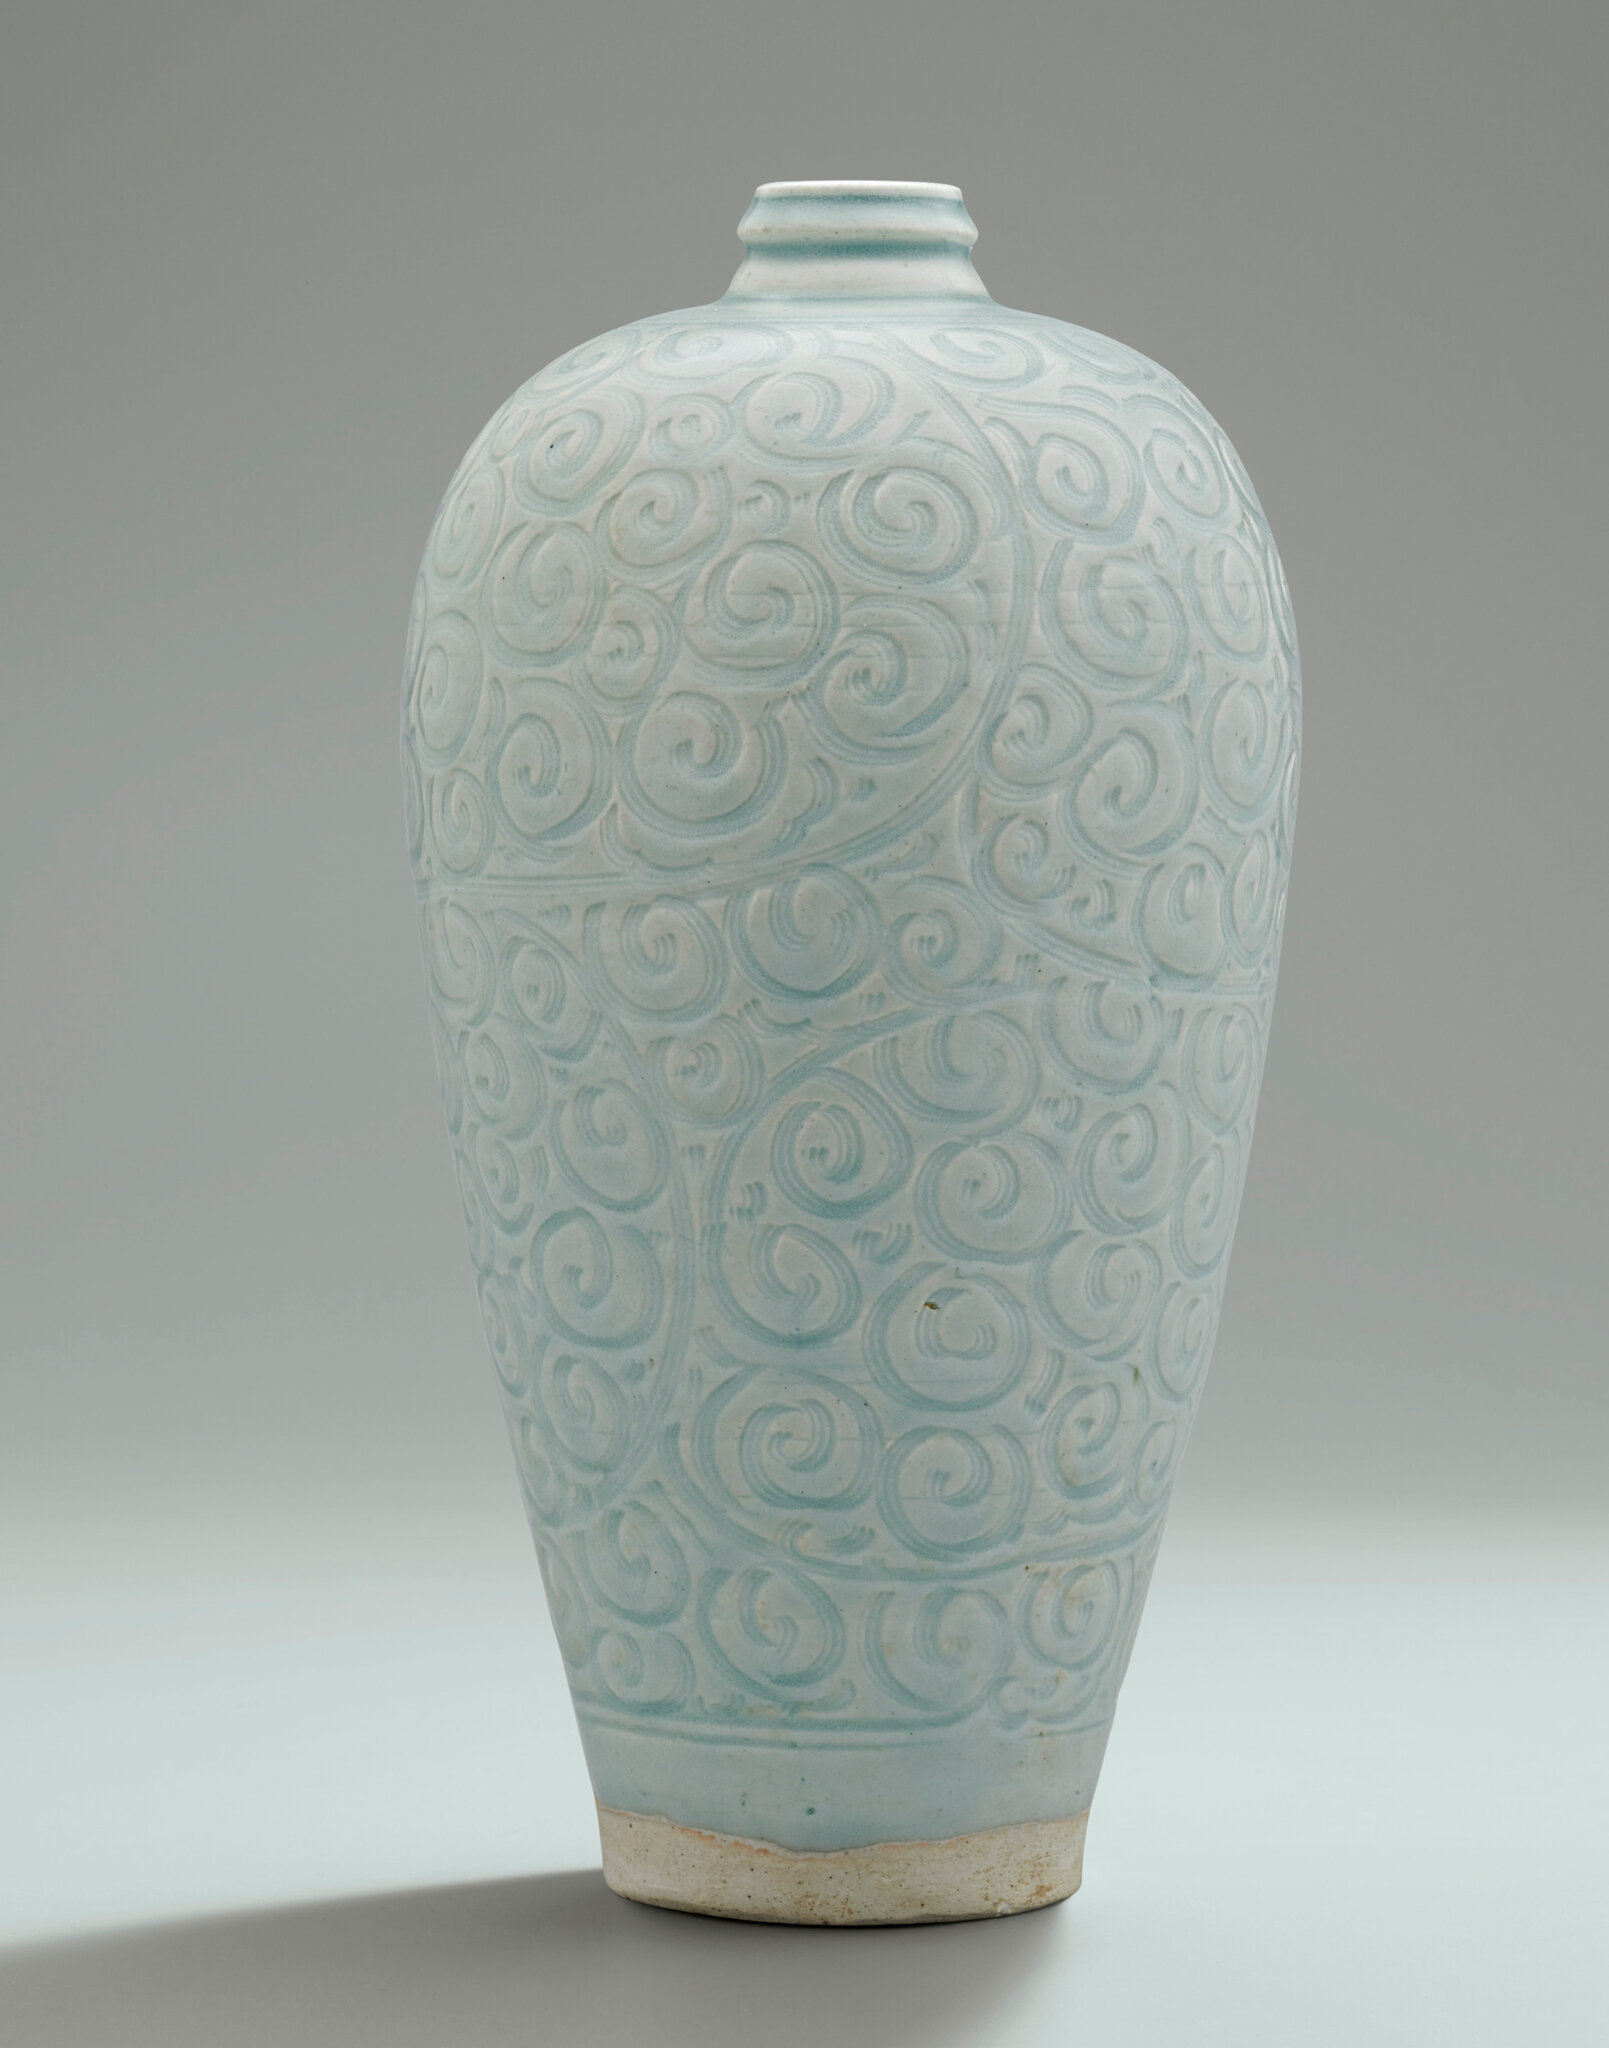 A rare large carved Qingbai vase, meiping, Southern Song Dynasty (1127-1279)